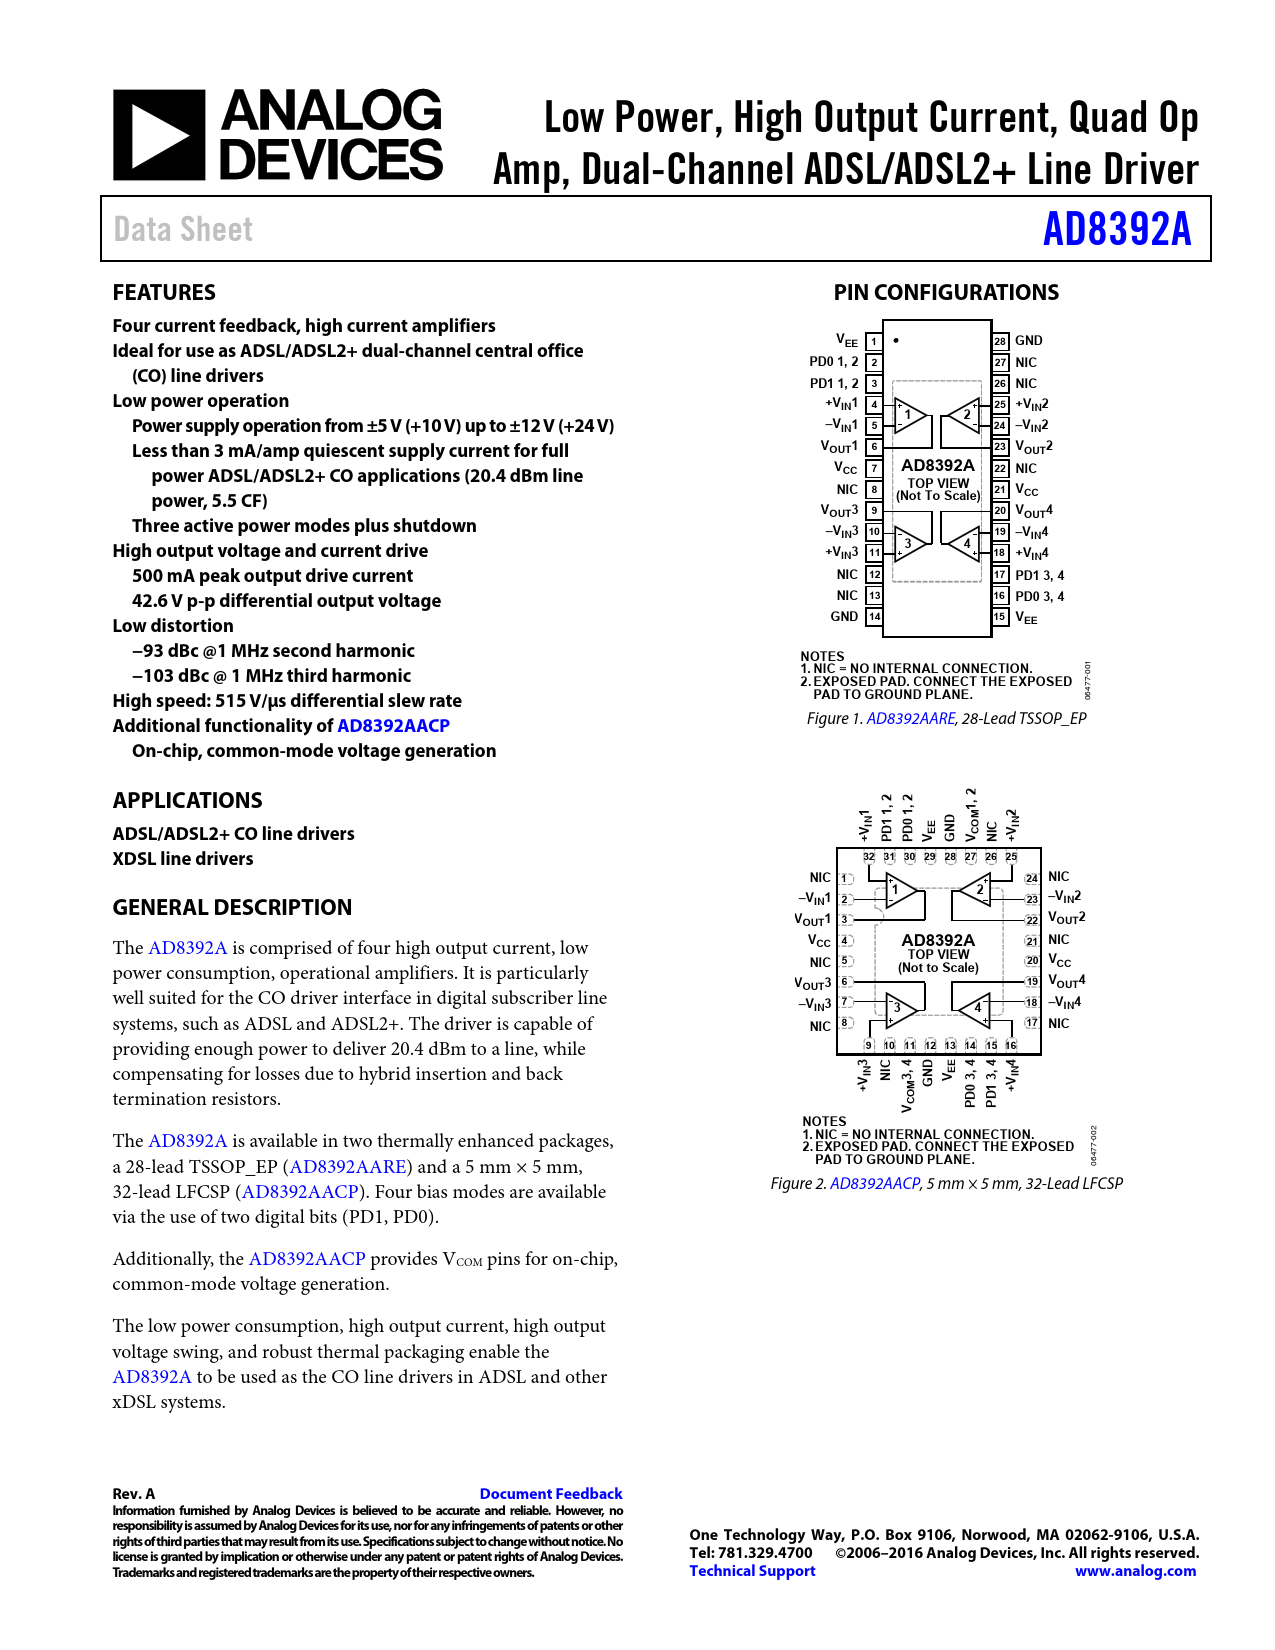 Datasheet AD8392A Analog Devices, Revision: A